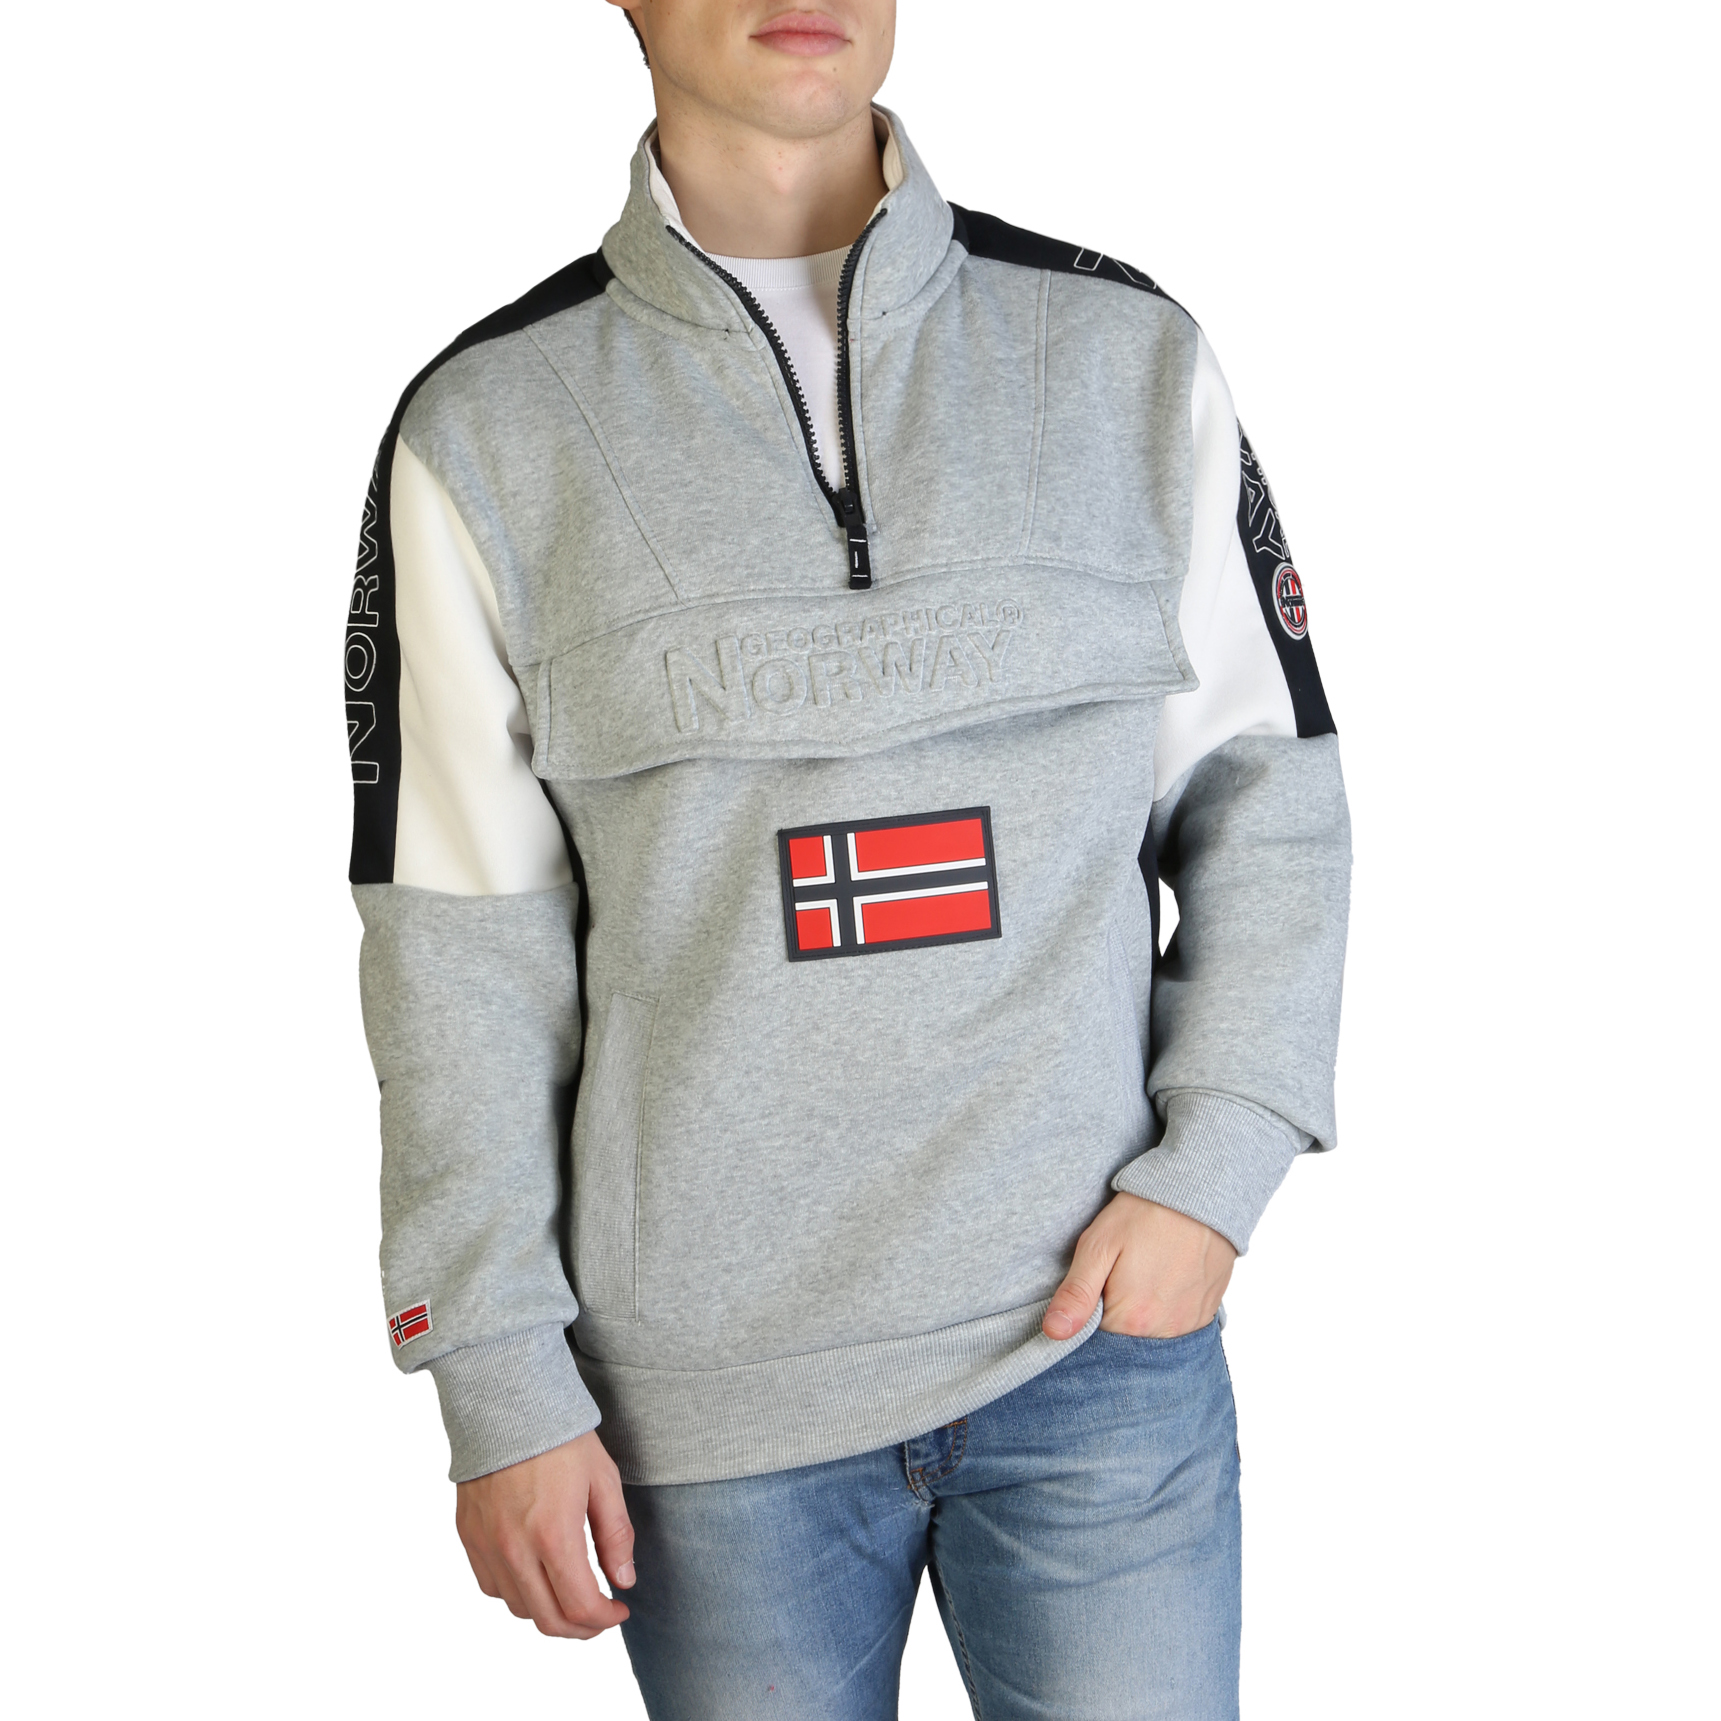 Geographical Norway Fagostino 007 man